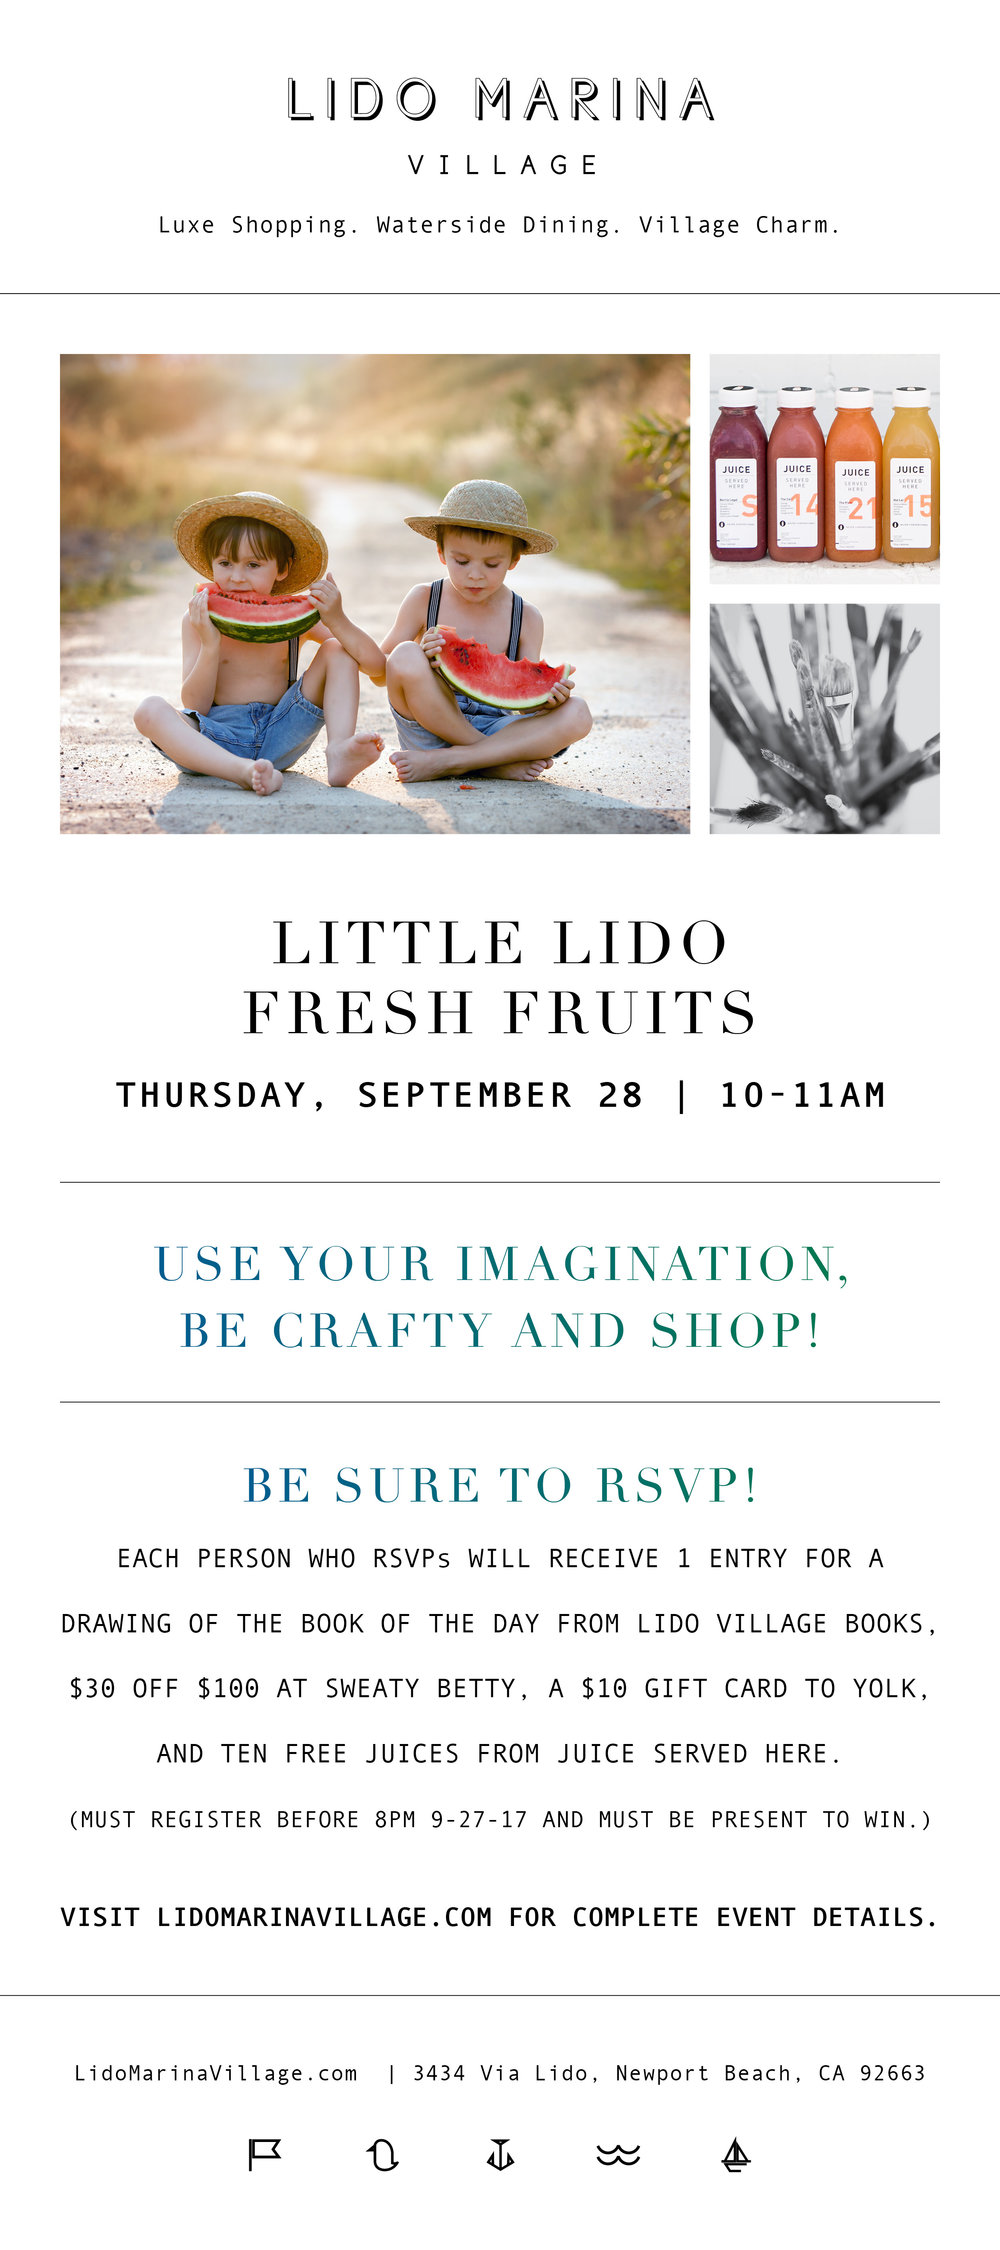 Little Lido_Web Asset_Sept 28.jpg